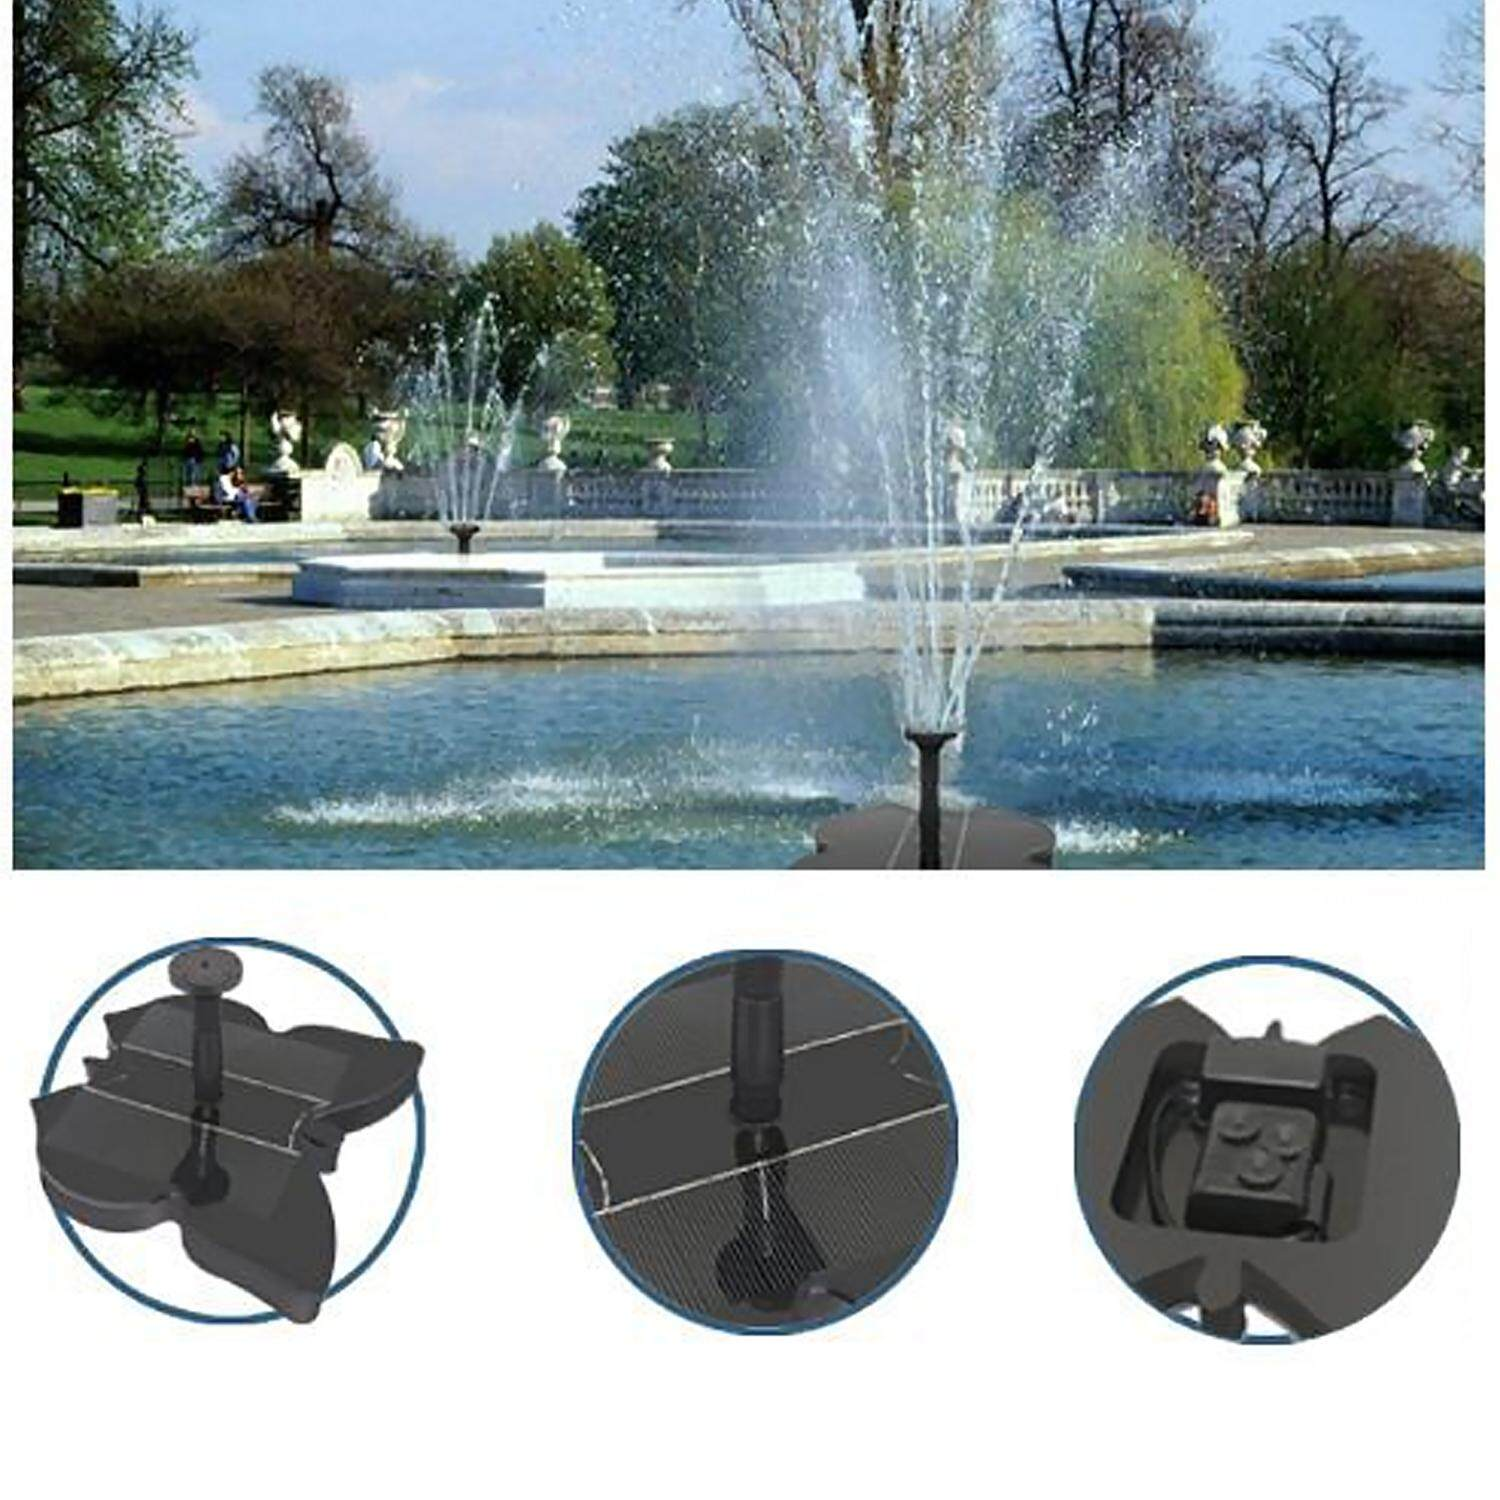 Vococal Solar Powered Miniature Fountain Water Pump for Bird Bath Fish Tank Pond Aquarium Pool Garden Yard Decoration Butterfly